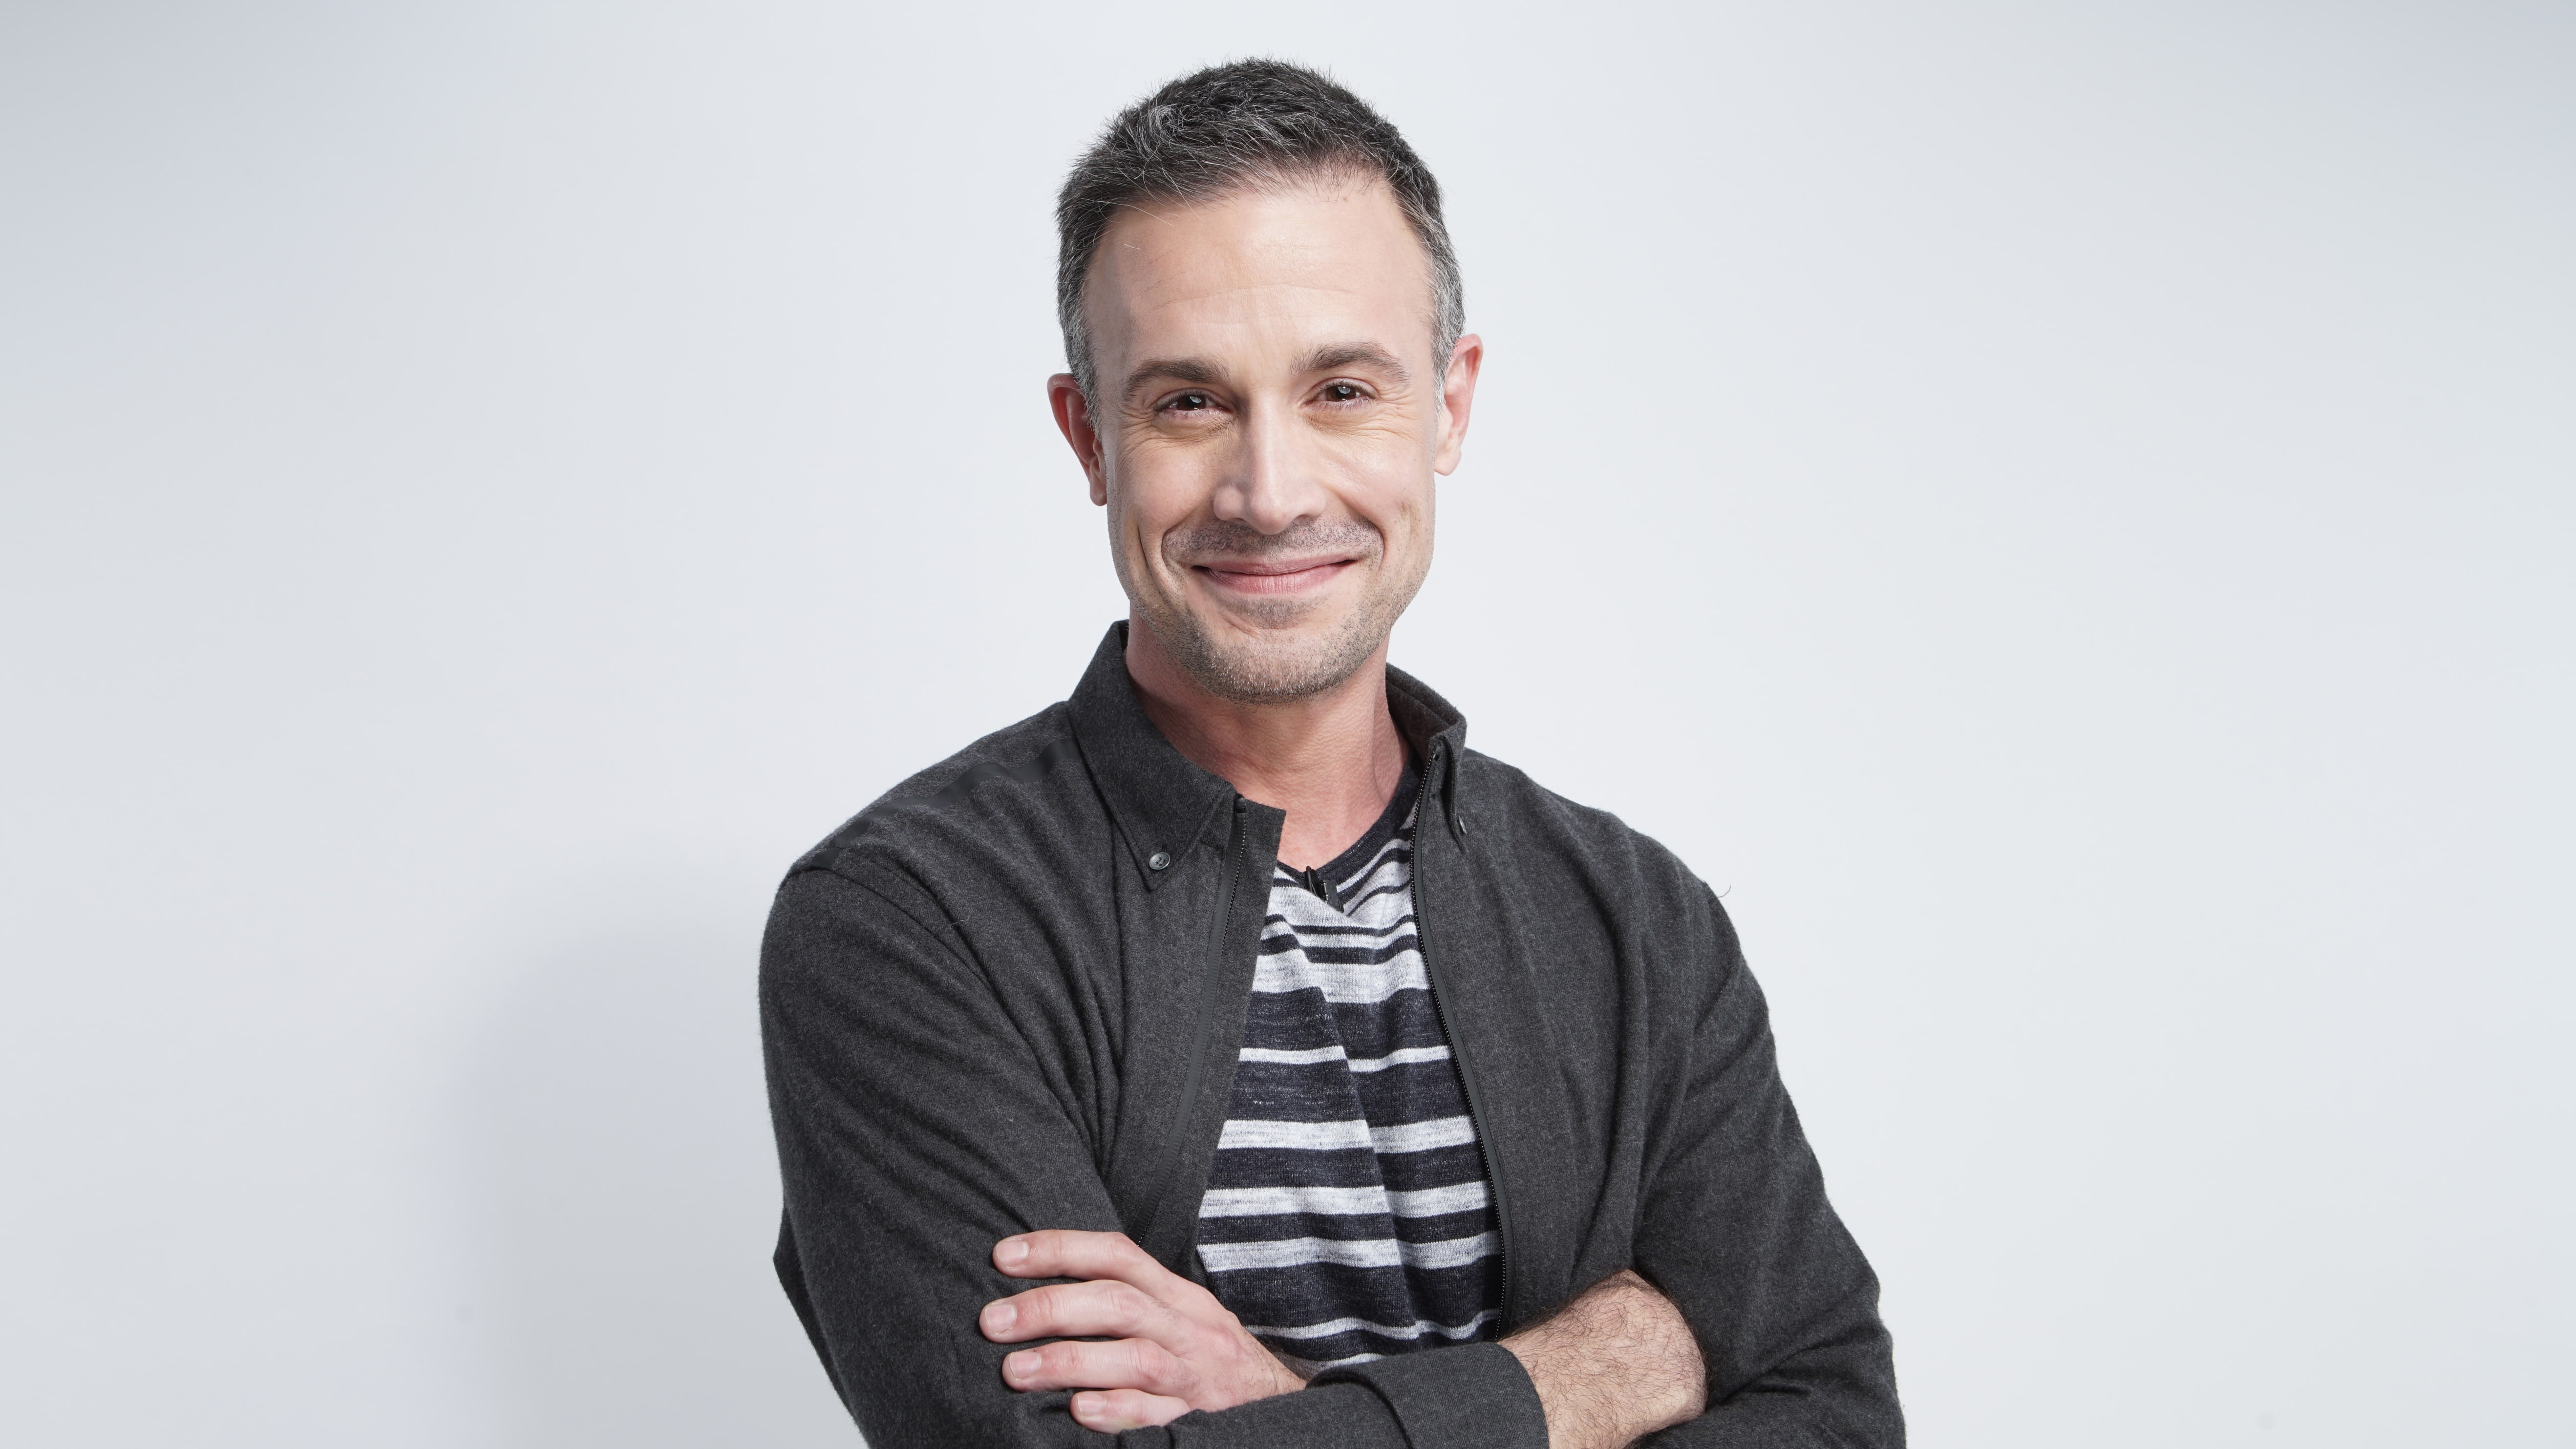 Freddie Prinze Jr. widescreen wallpapers